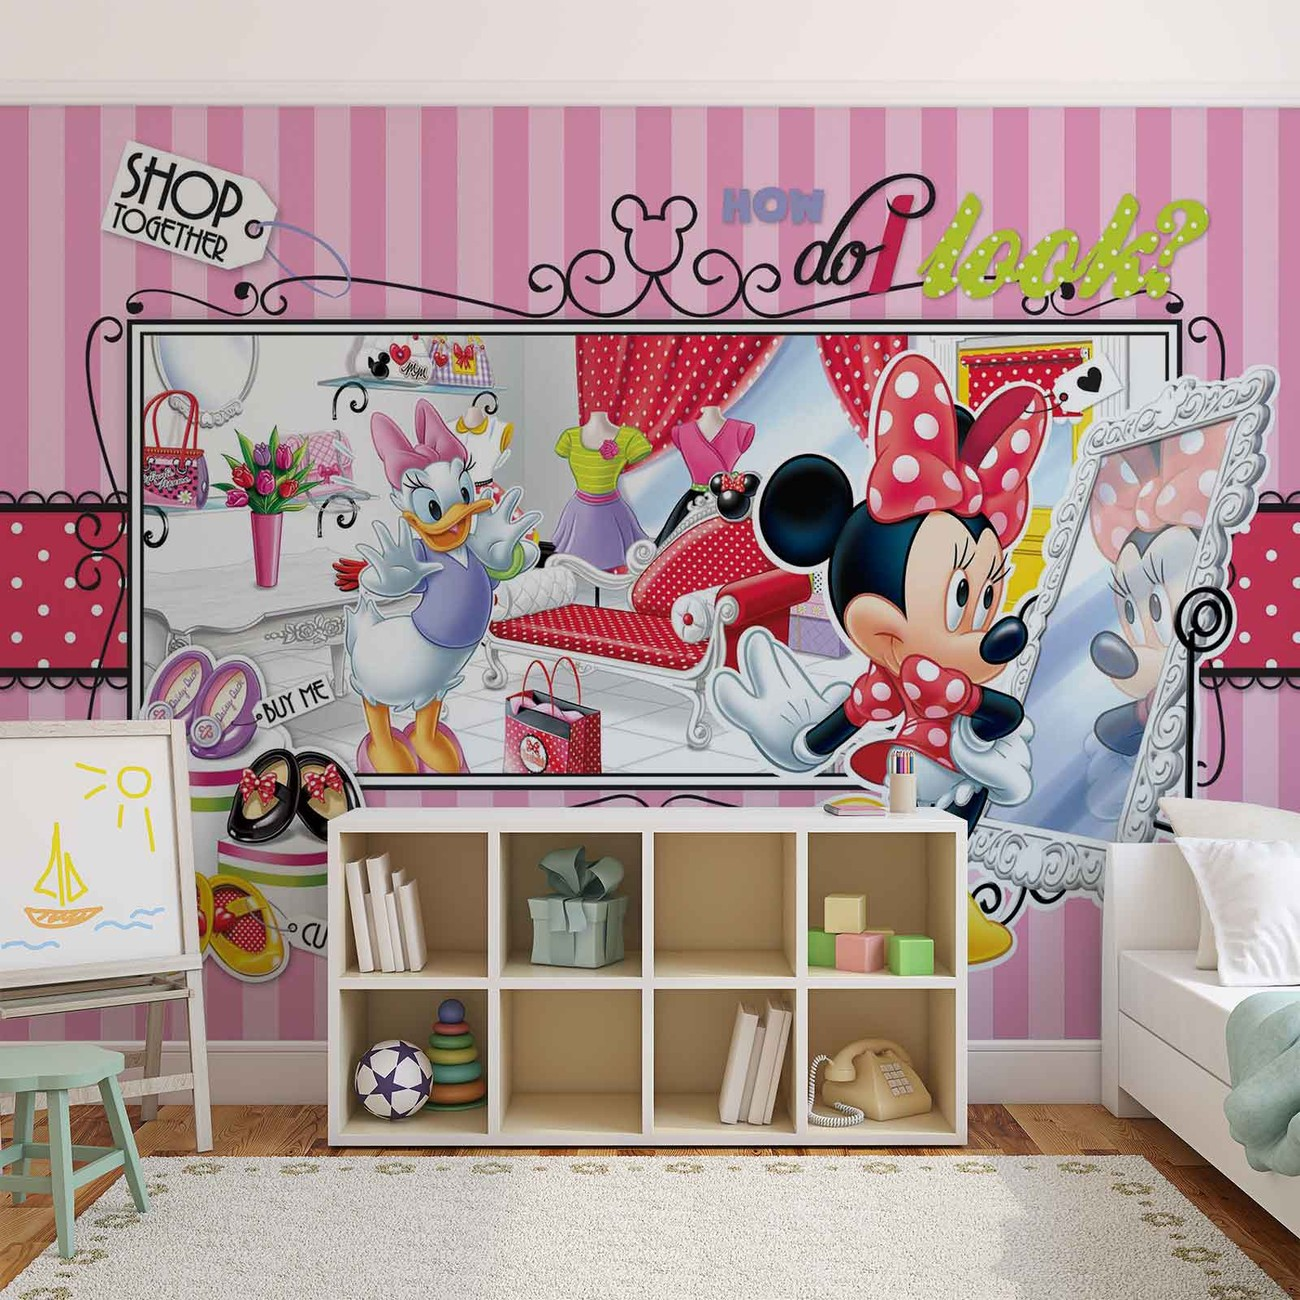 Disney minnie mouse daisy duck wall paper mural buy at for Daisy fuentes wall mural